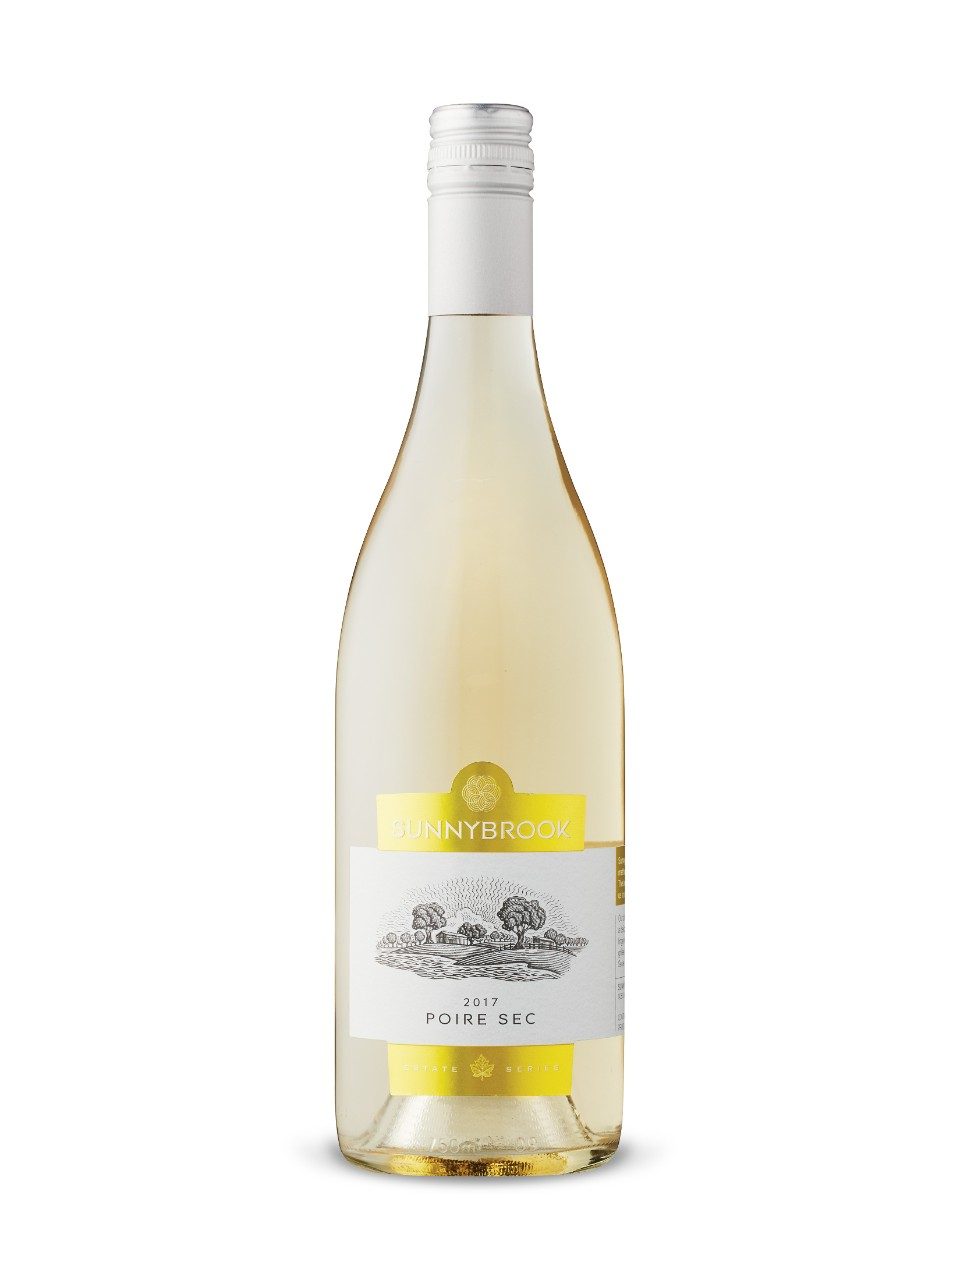 Poire Sec Estate Series Sunnybrook 2015